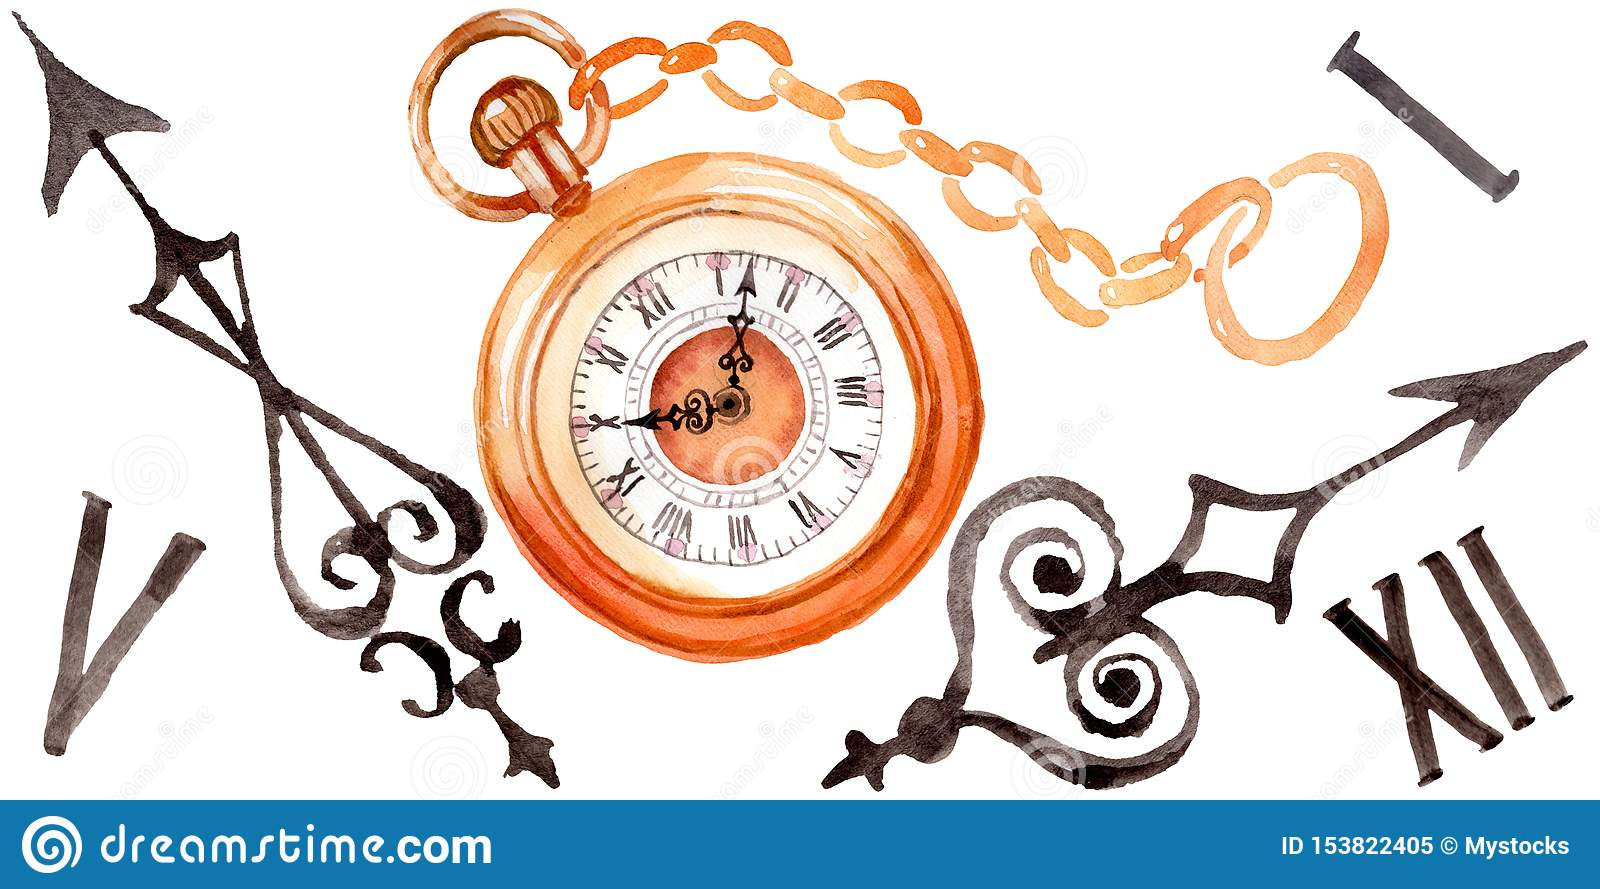 148 Drawing Pocket Watch Photos Free Royalty Free Stock Photos From Dreamstime Download 150+ royalty free vintage pocket watch drawing vector images. https www dreamstime com vintage old clock pocket watch watercolor background illustration set watercolour drawing fashion aquarelle isolated isolated image153822405